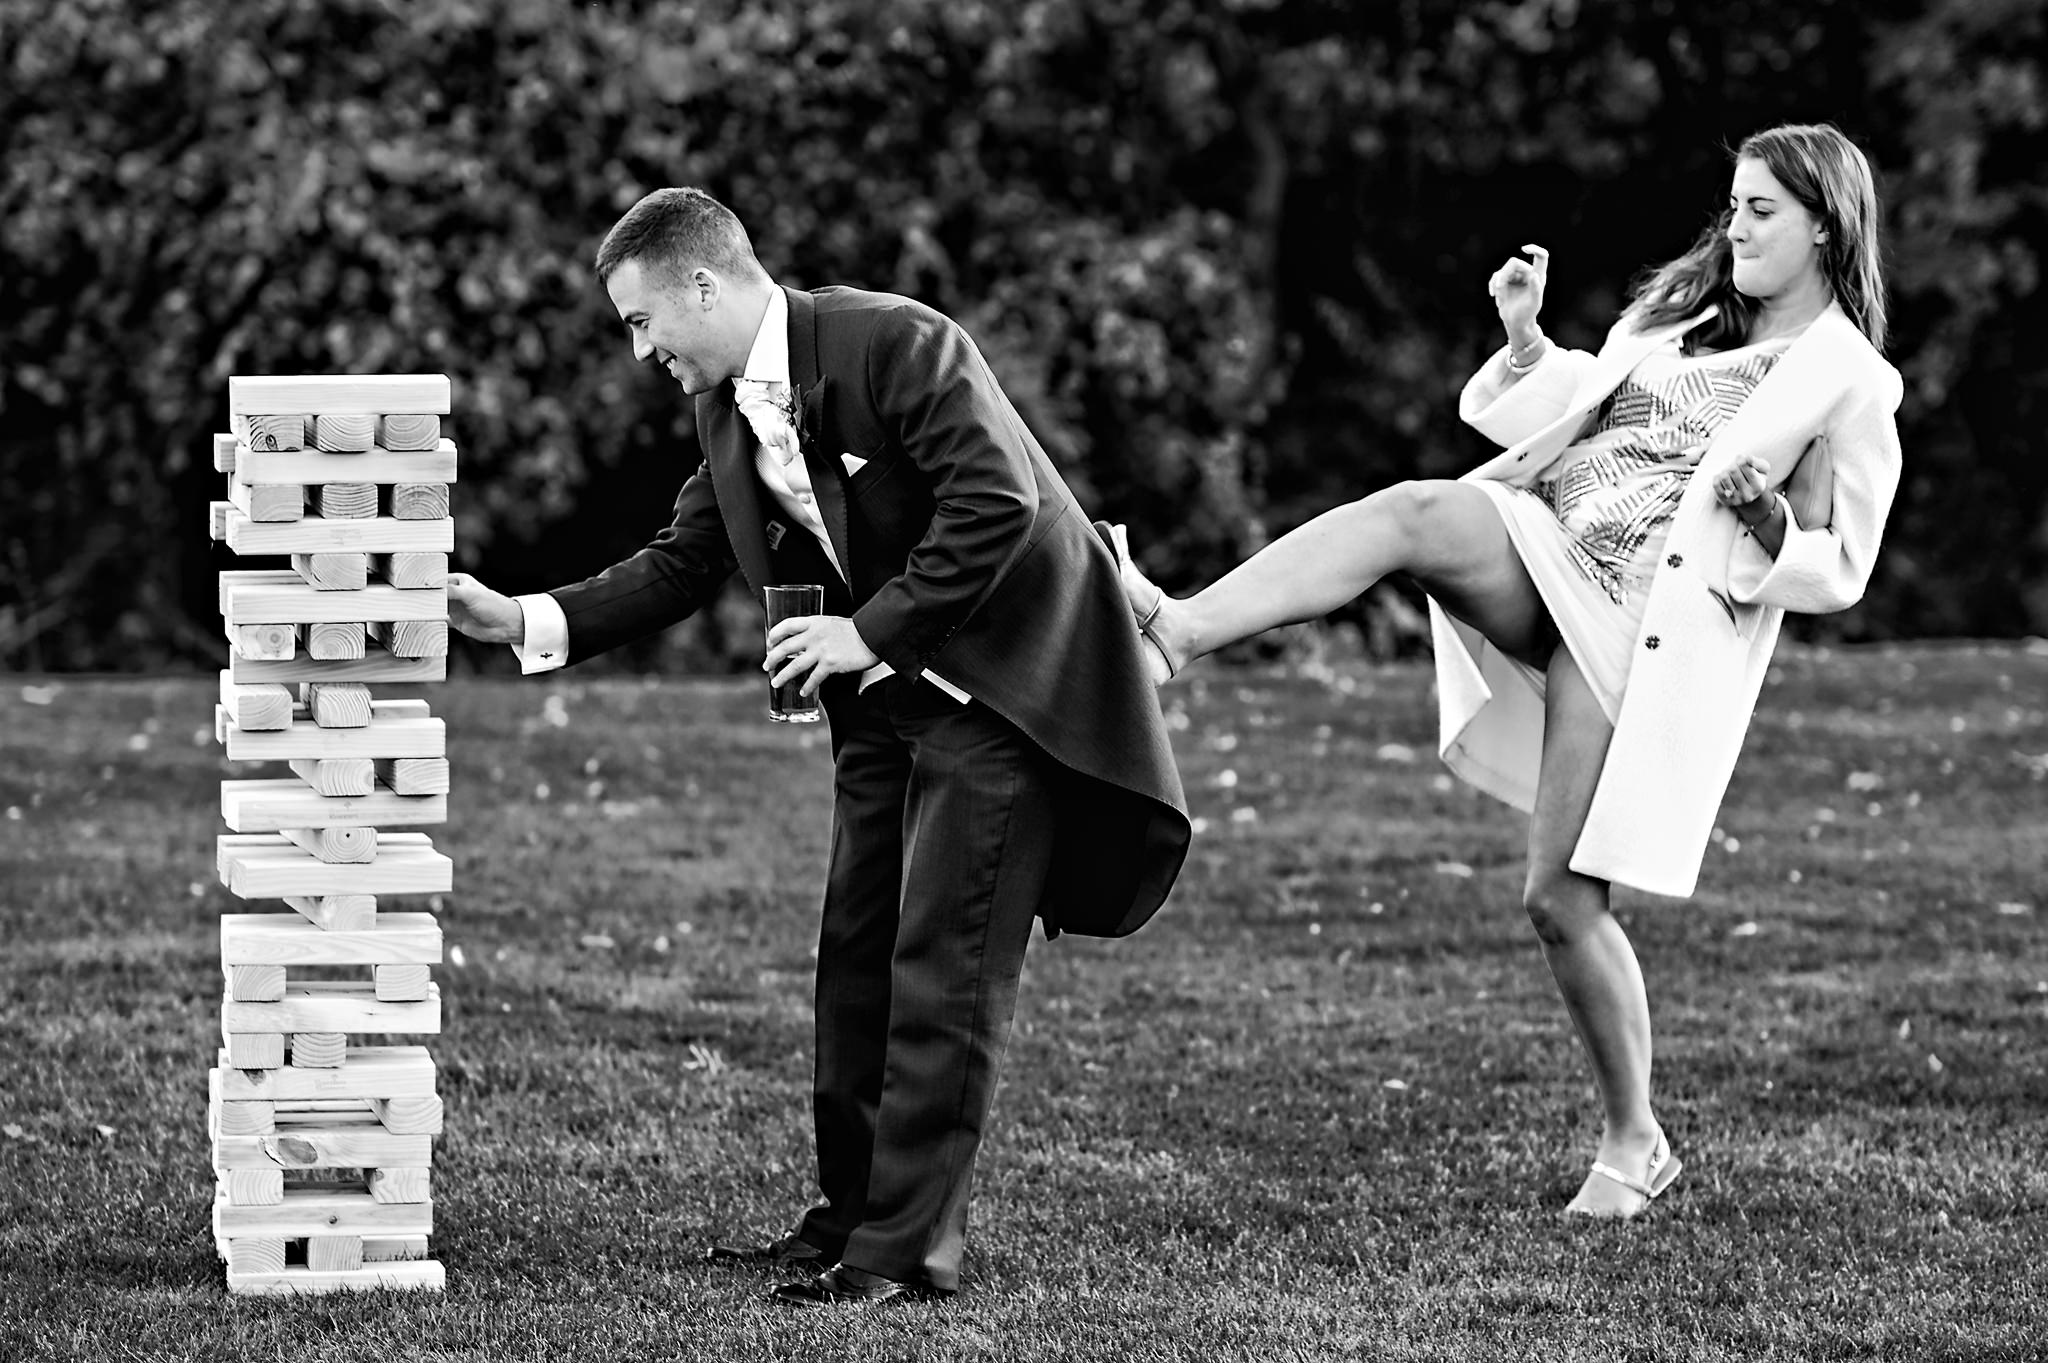 Guest pushes groom while he's playing Jenga - photo by Rich Howman